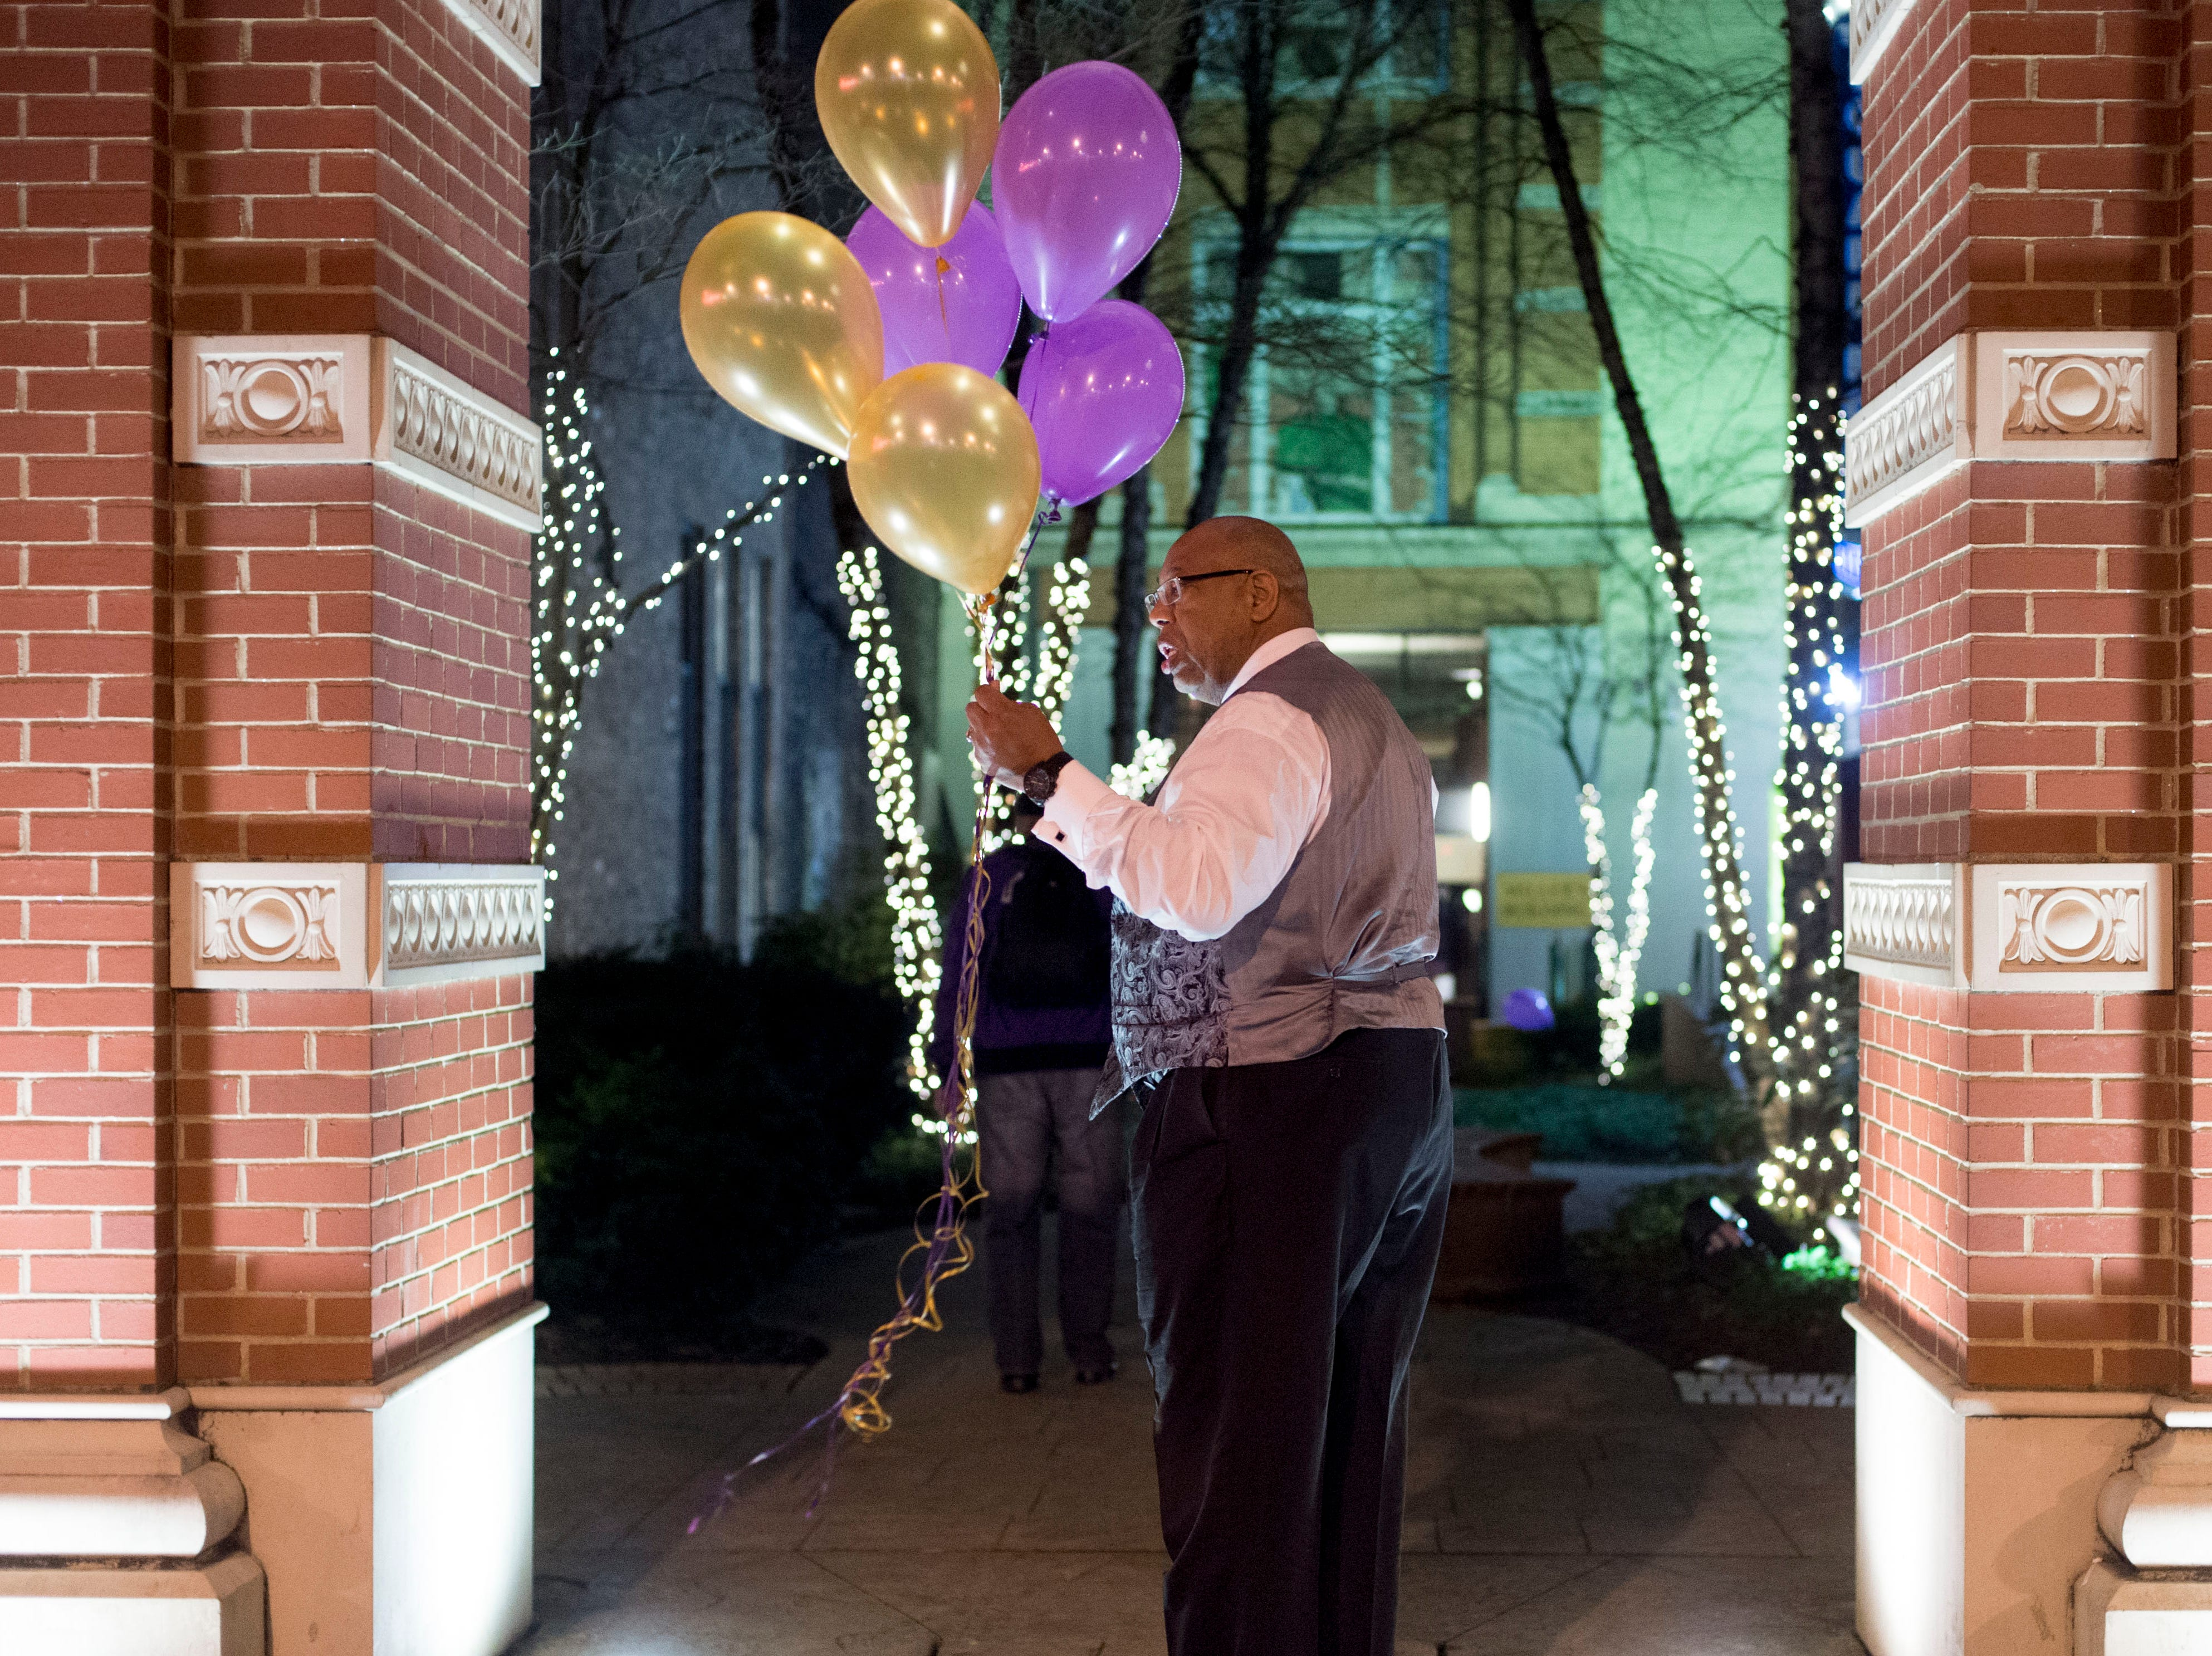 Bobby Leverett carries balloon and greets guest to a New Year's Even party for the Omega Psi Phi fraternity at Market Square, Thursday, December 31, 2015. The purple and gold balloons are the colors of his fraternity.